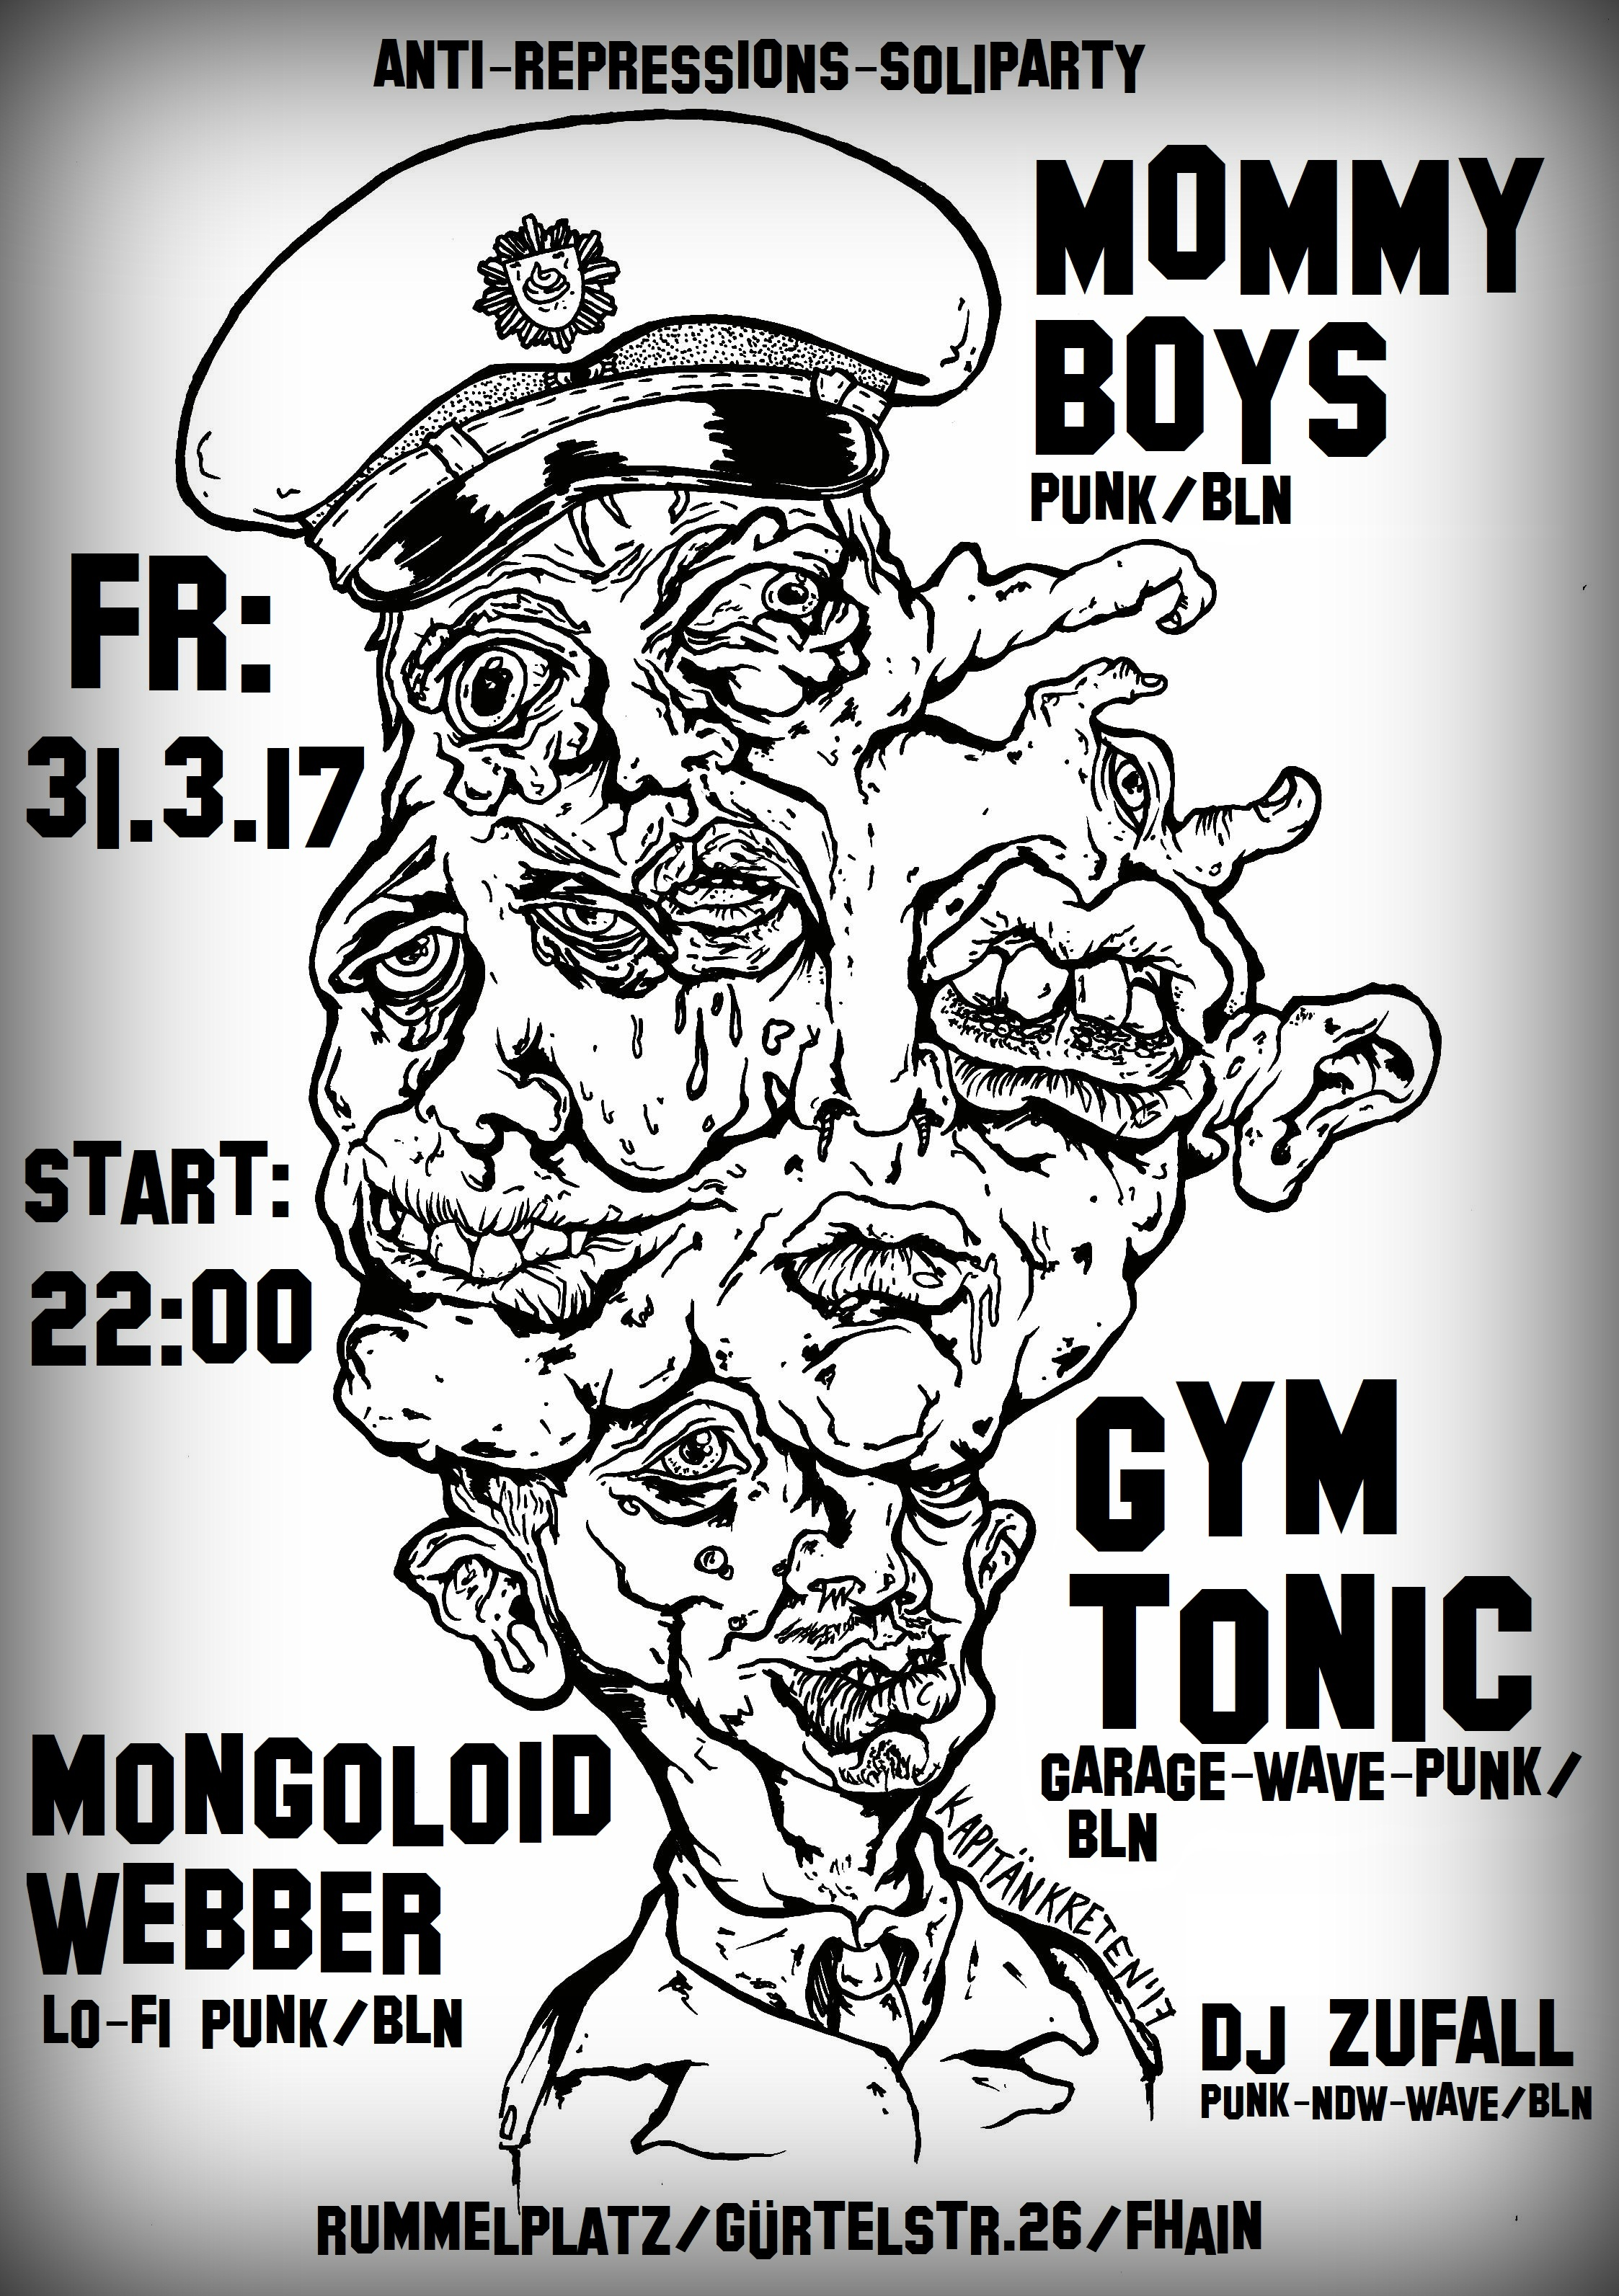 mongoloid webber, mommy boys, gym tonic,berlin, rummelplatz,lofi,livertrance, anti-repressions-soliparty